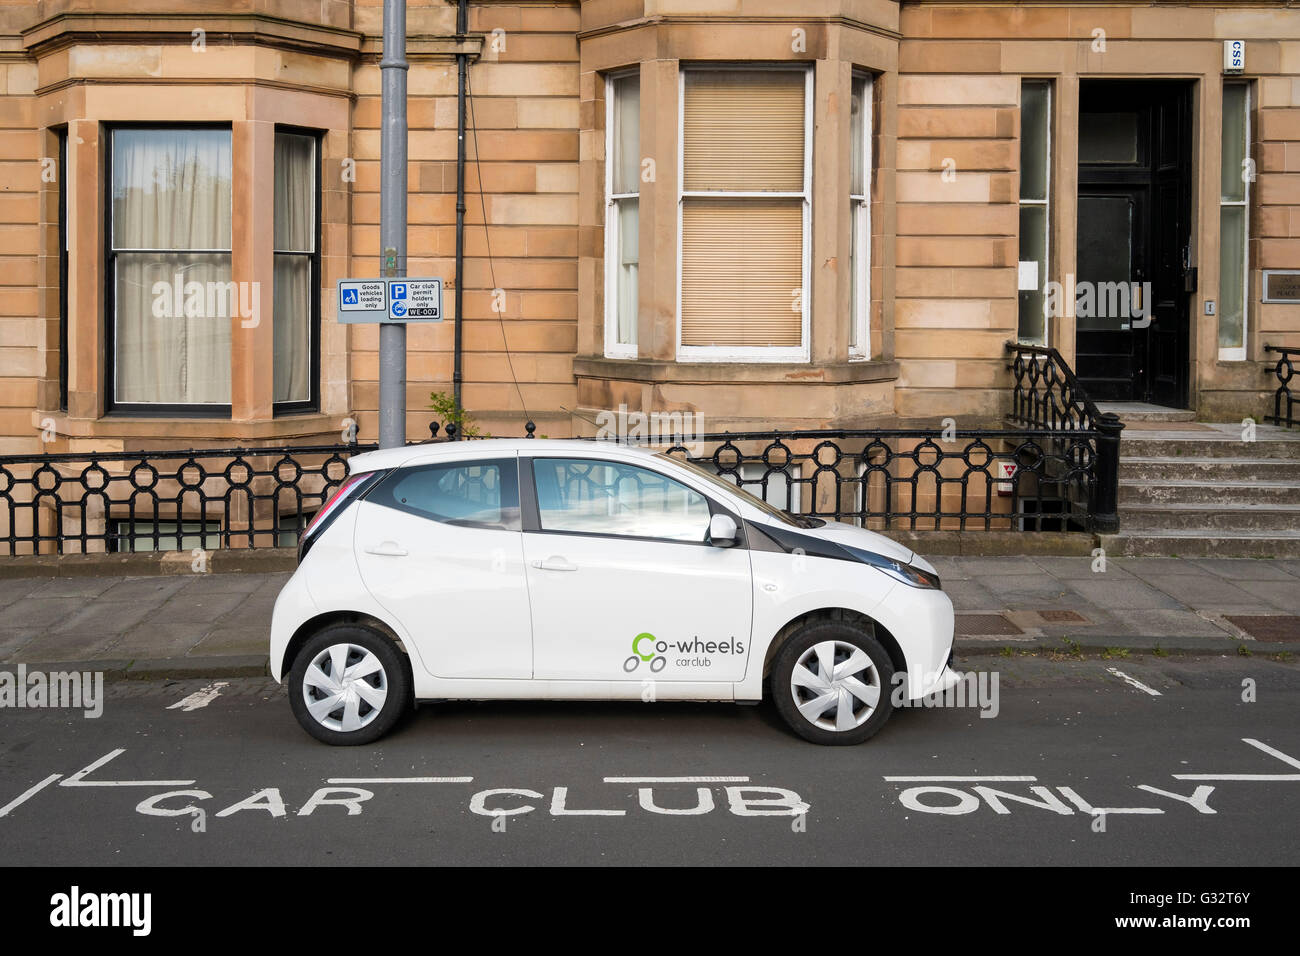 reserved Car Club Parking space in Glasgow United Kingdom - Stock Image